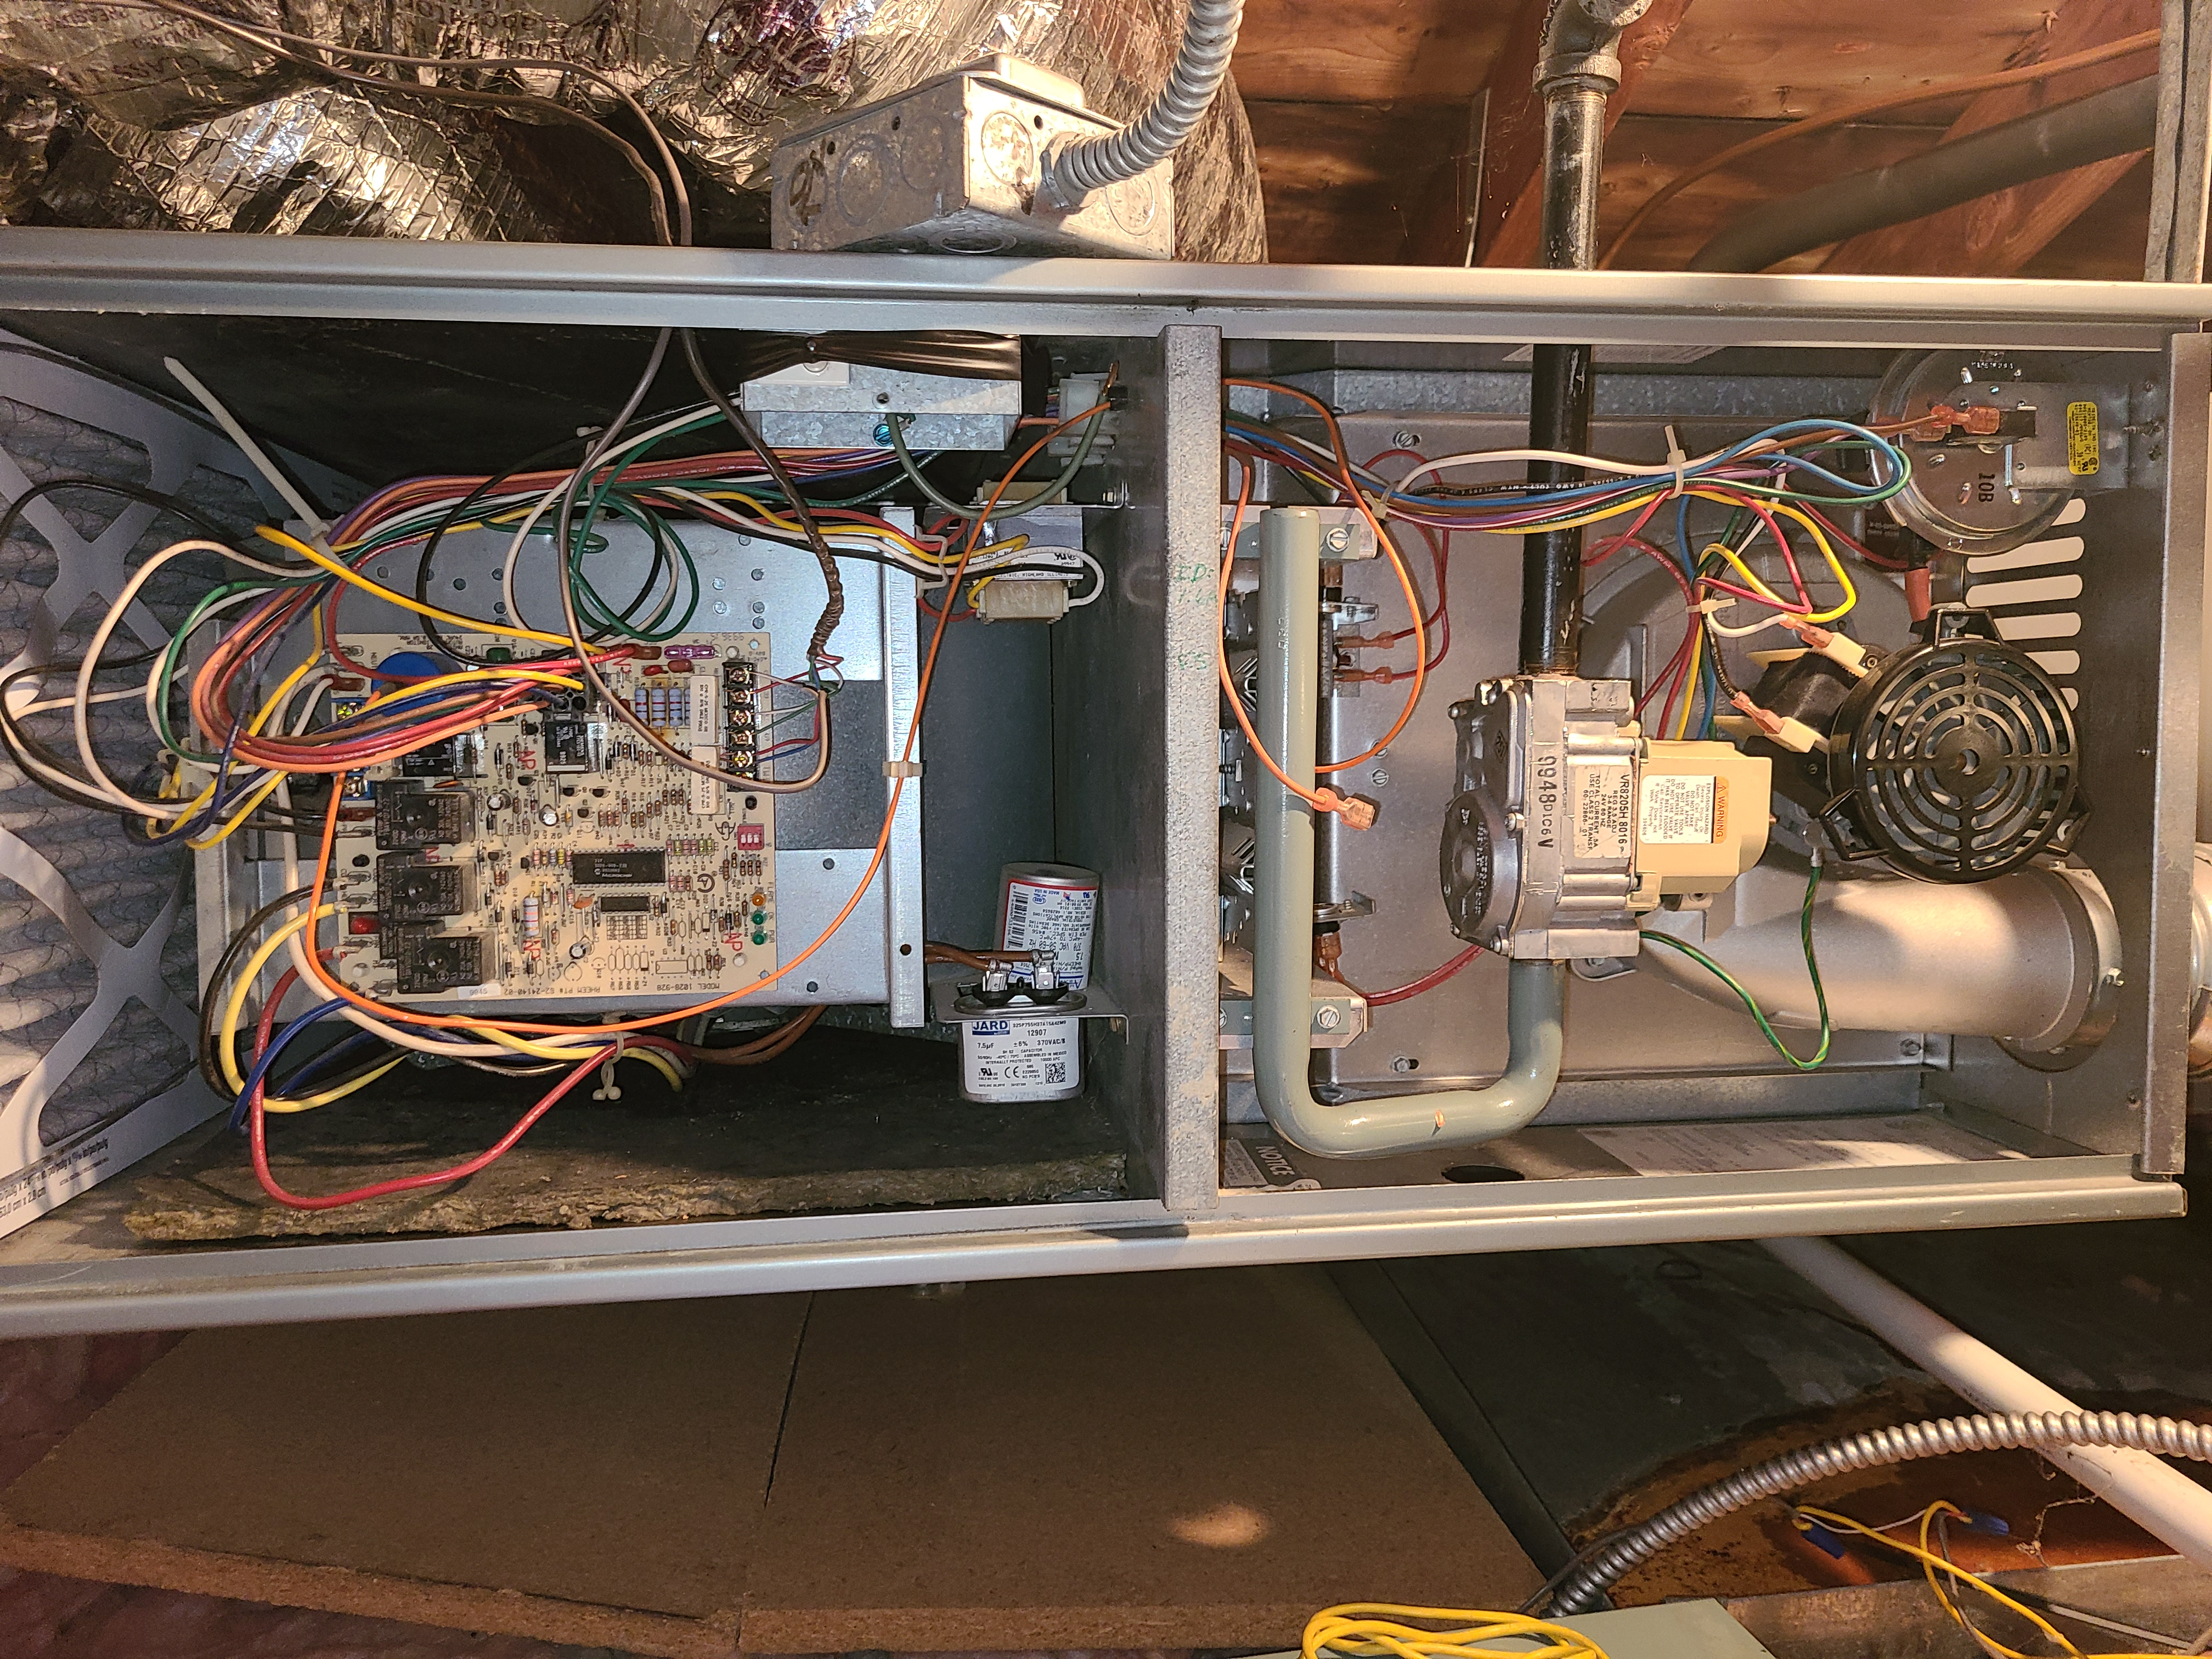 Rheem furnace fall clean and check. System tuned up and ready for winter.